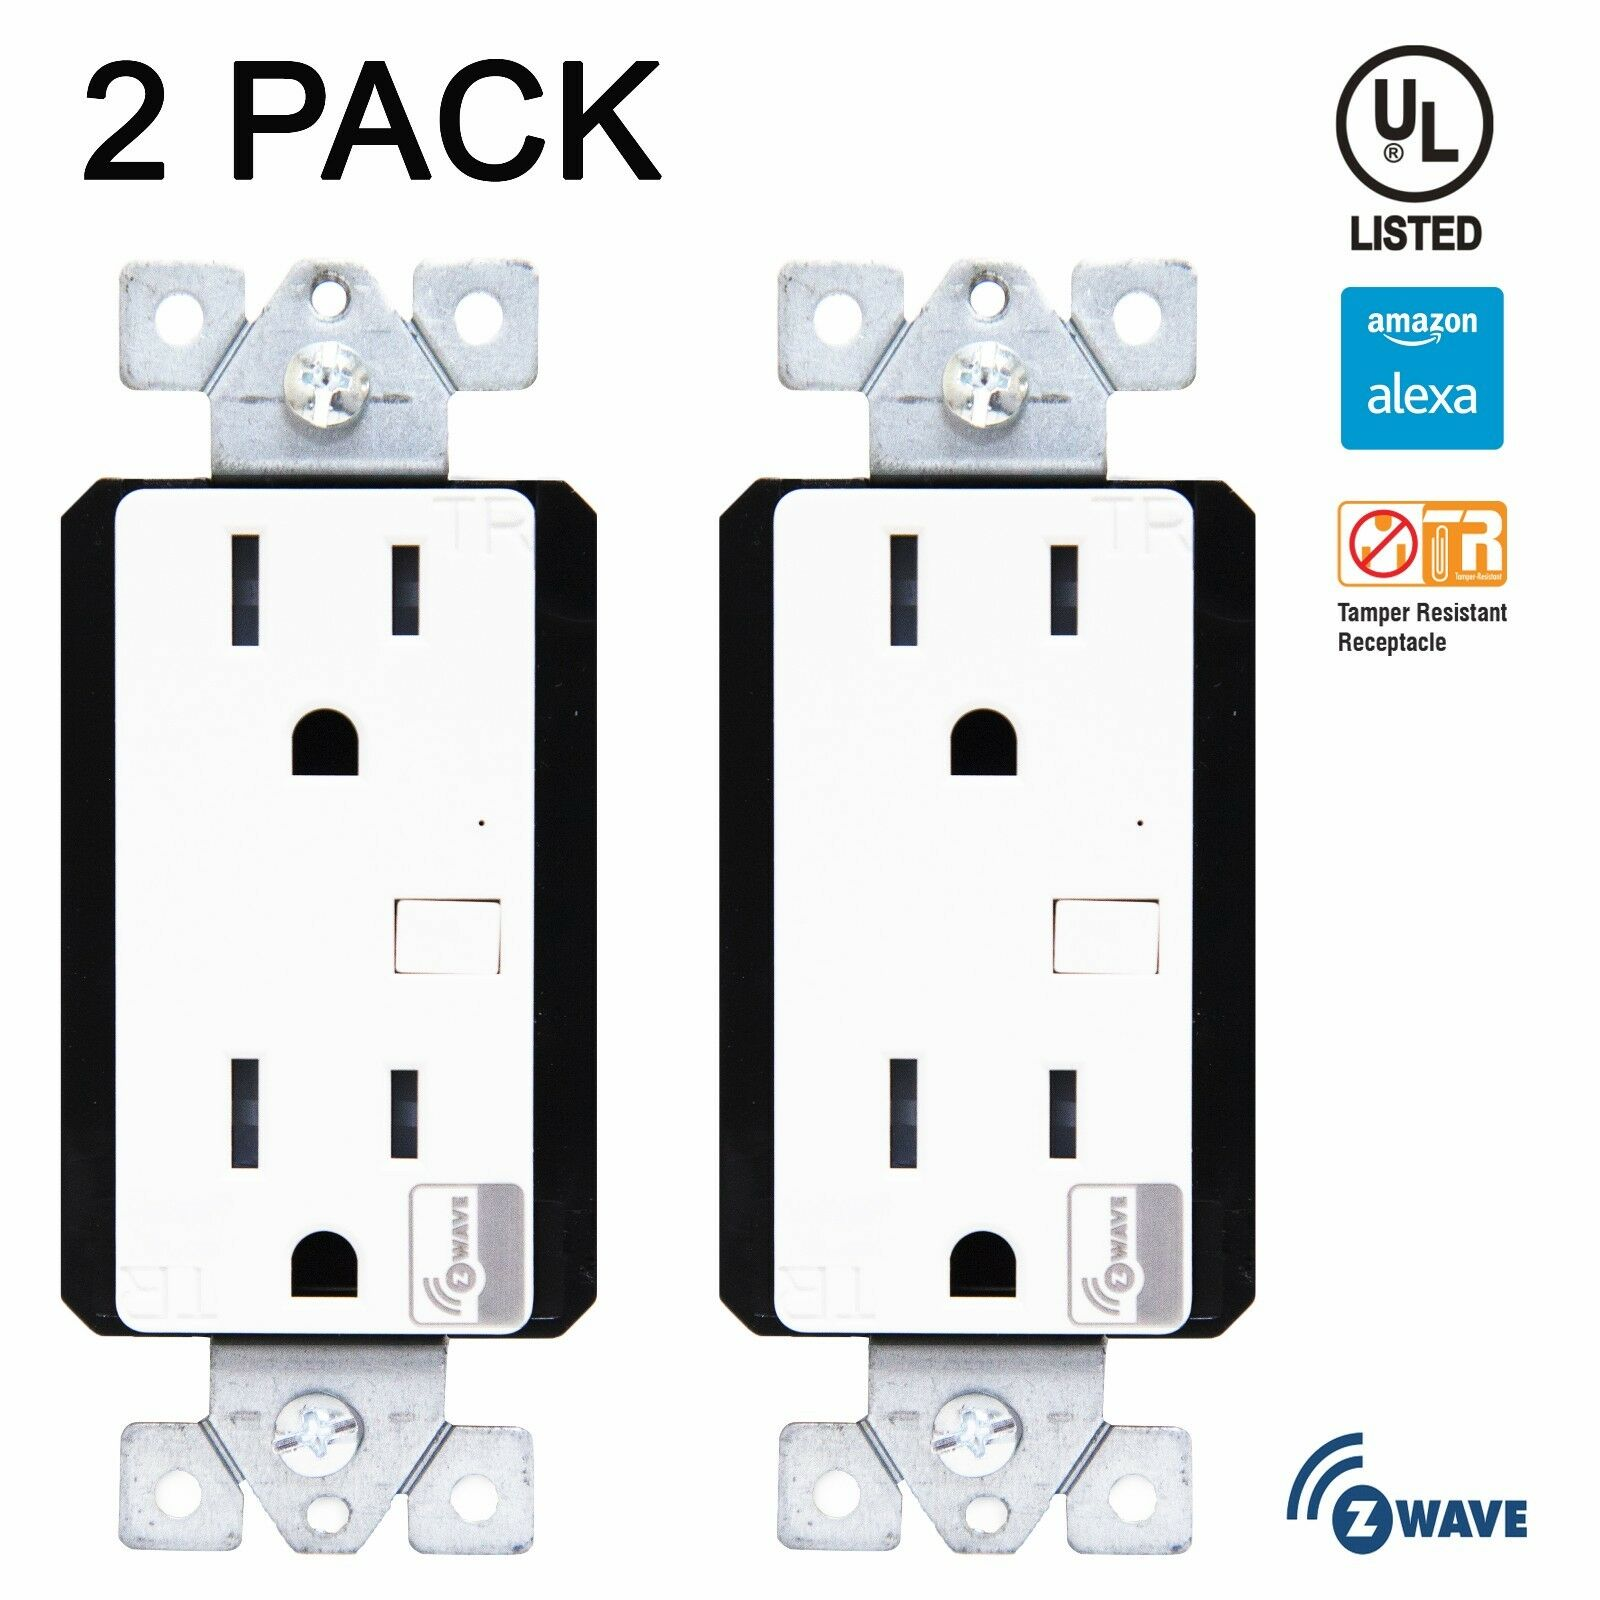 2 Pack Z-Wave Outlet 15A Duplex Receptacle Wireless Control Home Automation